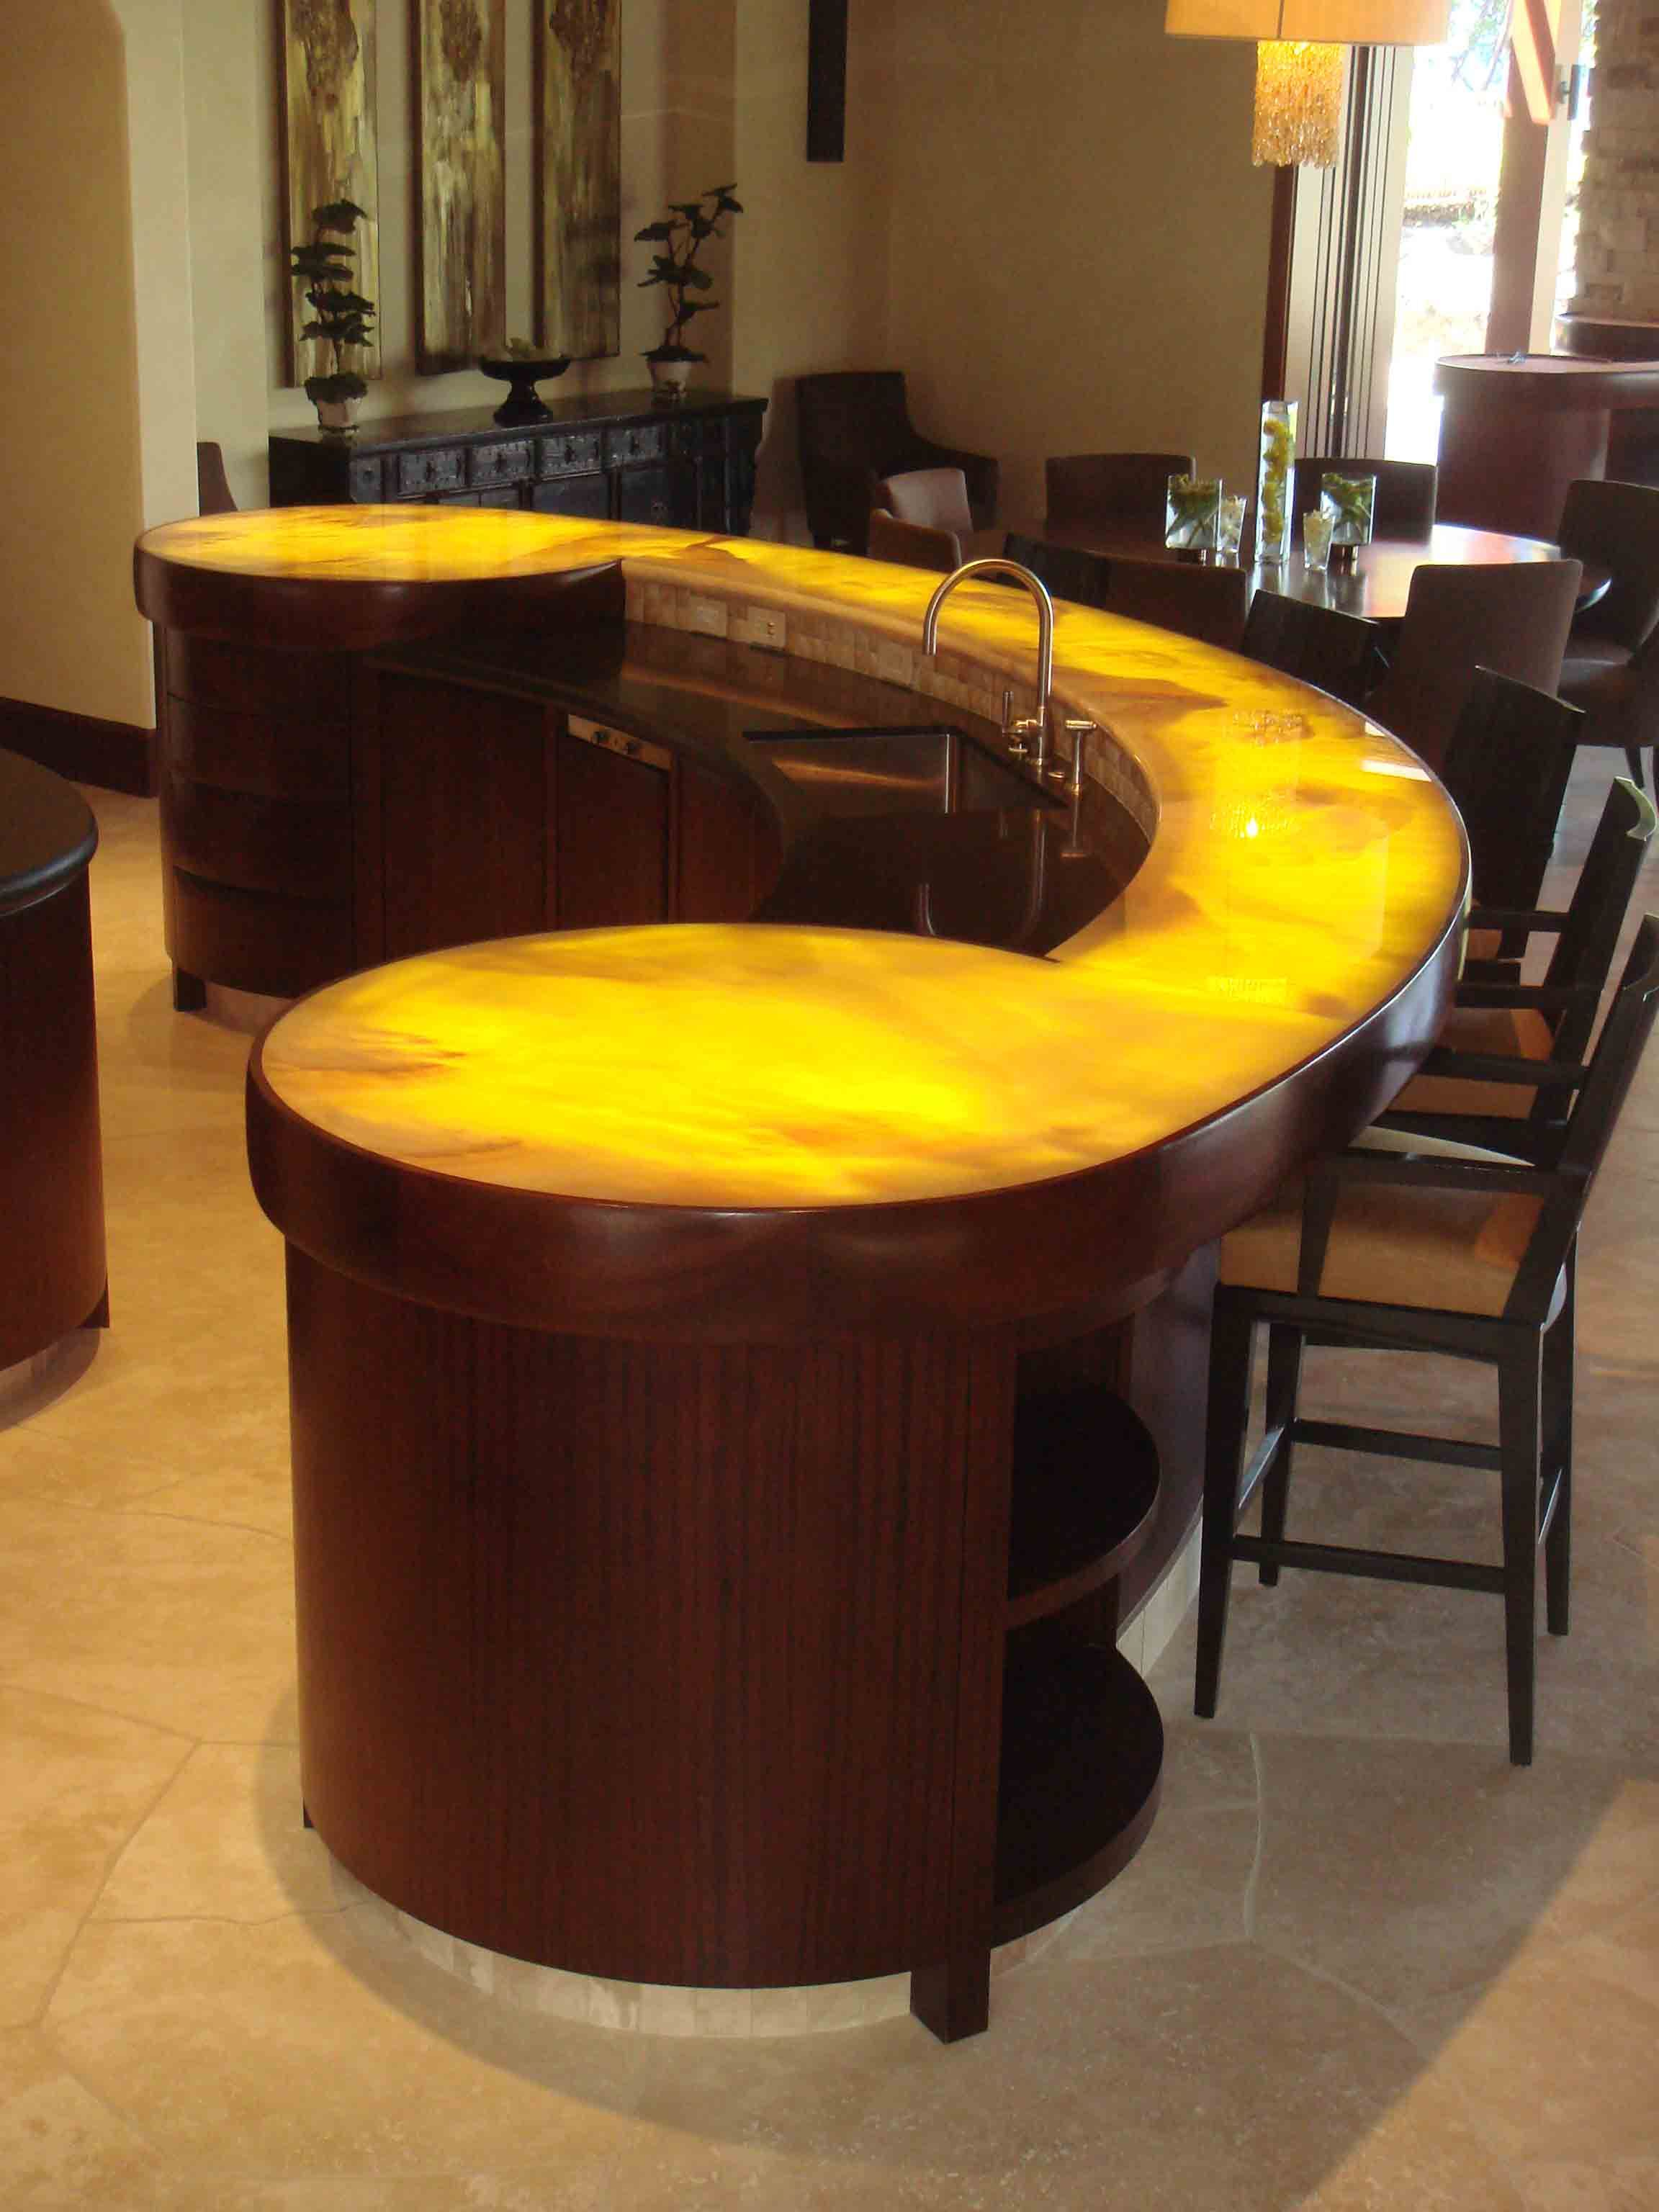 Fetching modern bar counter designs for home design with dark brown wood small bar table also - Kitchen bar table ideas ...